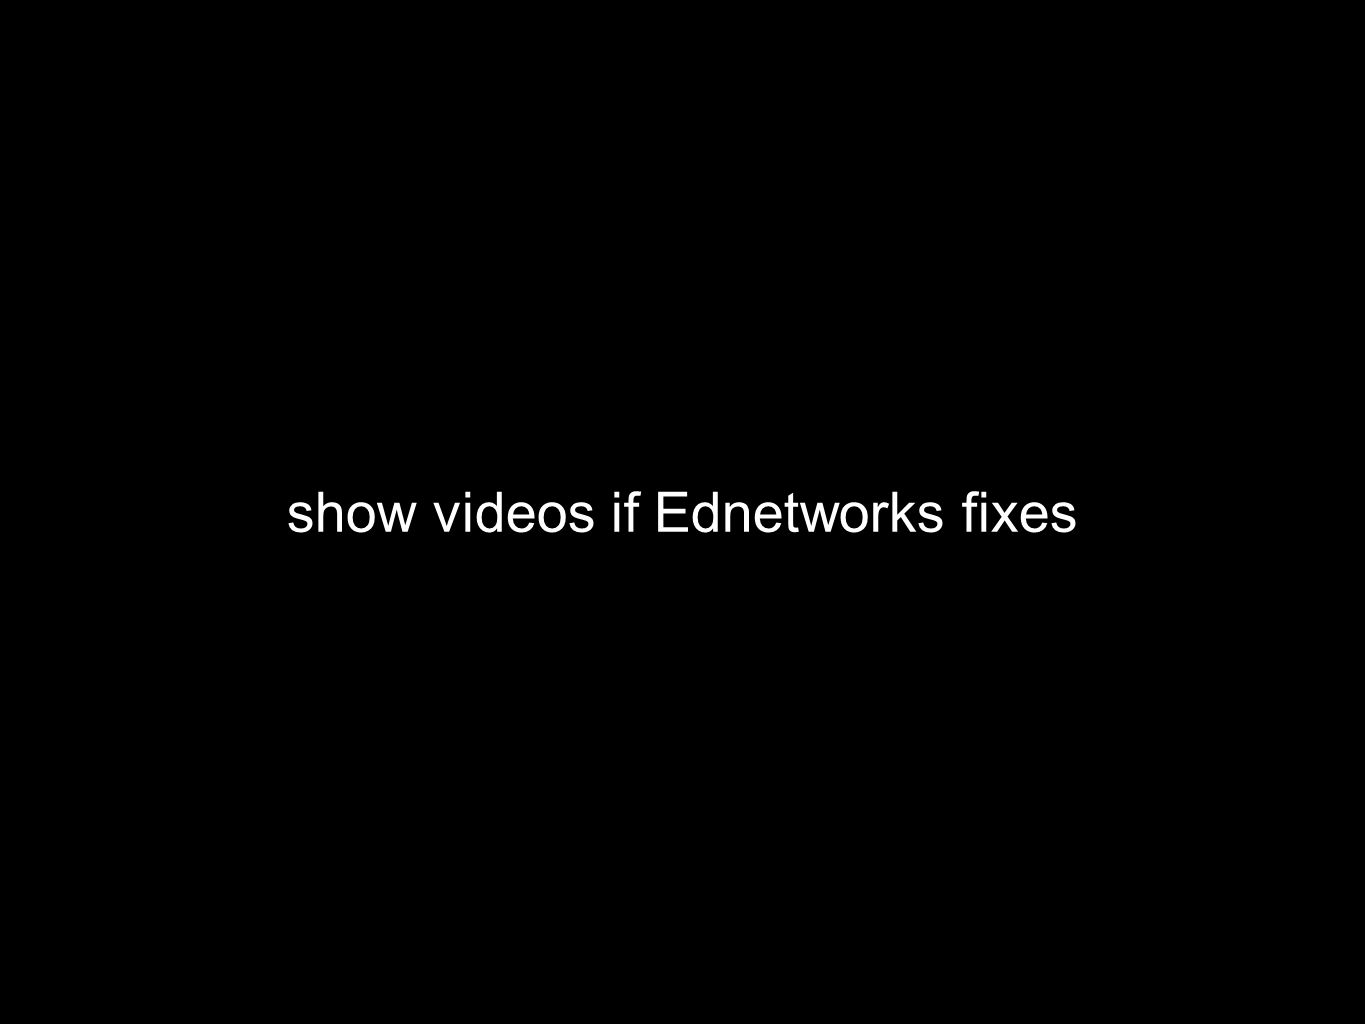 show videos if Ednetworks fixes